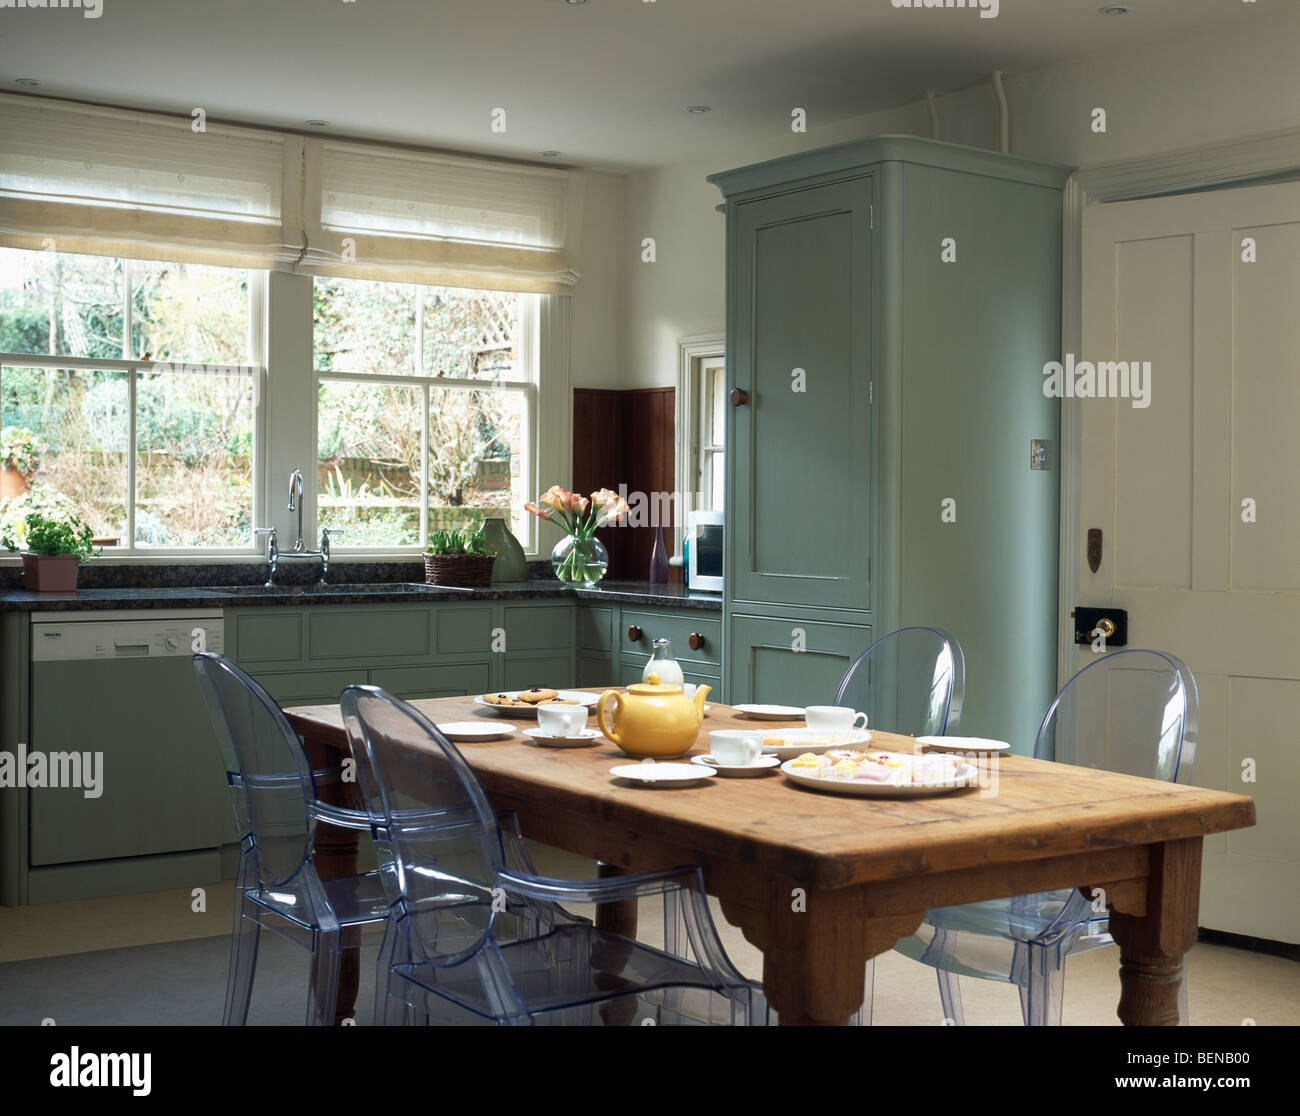 philippe starck ghost chairs at old pine table in country kitchen with fitted turquoise units and - Philippe Starck Kitchen